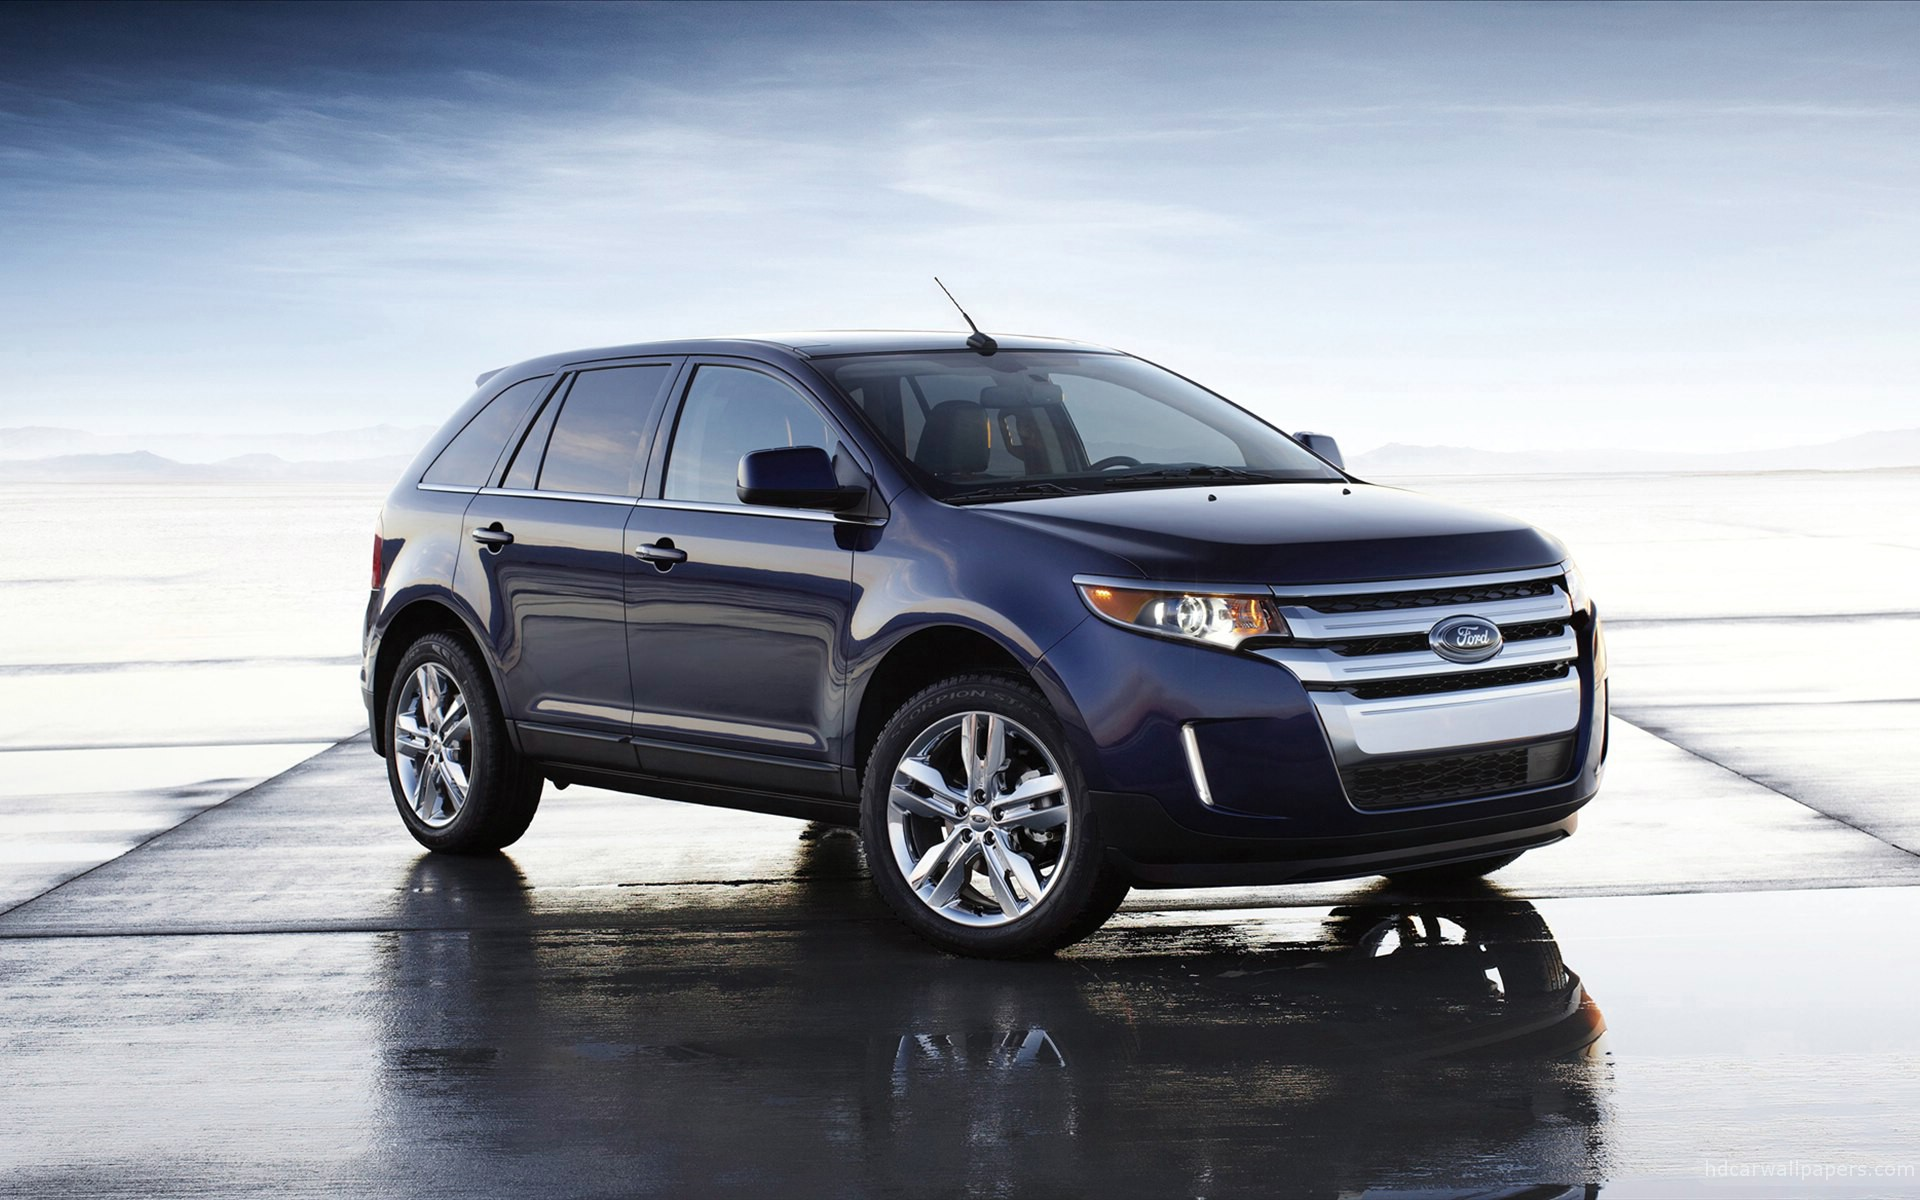 2012 Ford Edge Sport Wallpaper HD Car Wallpapers 1920x1200